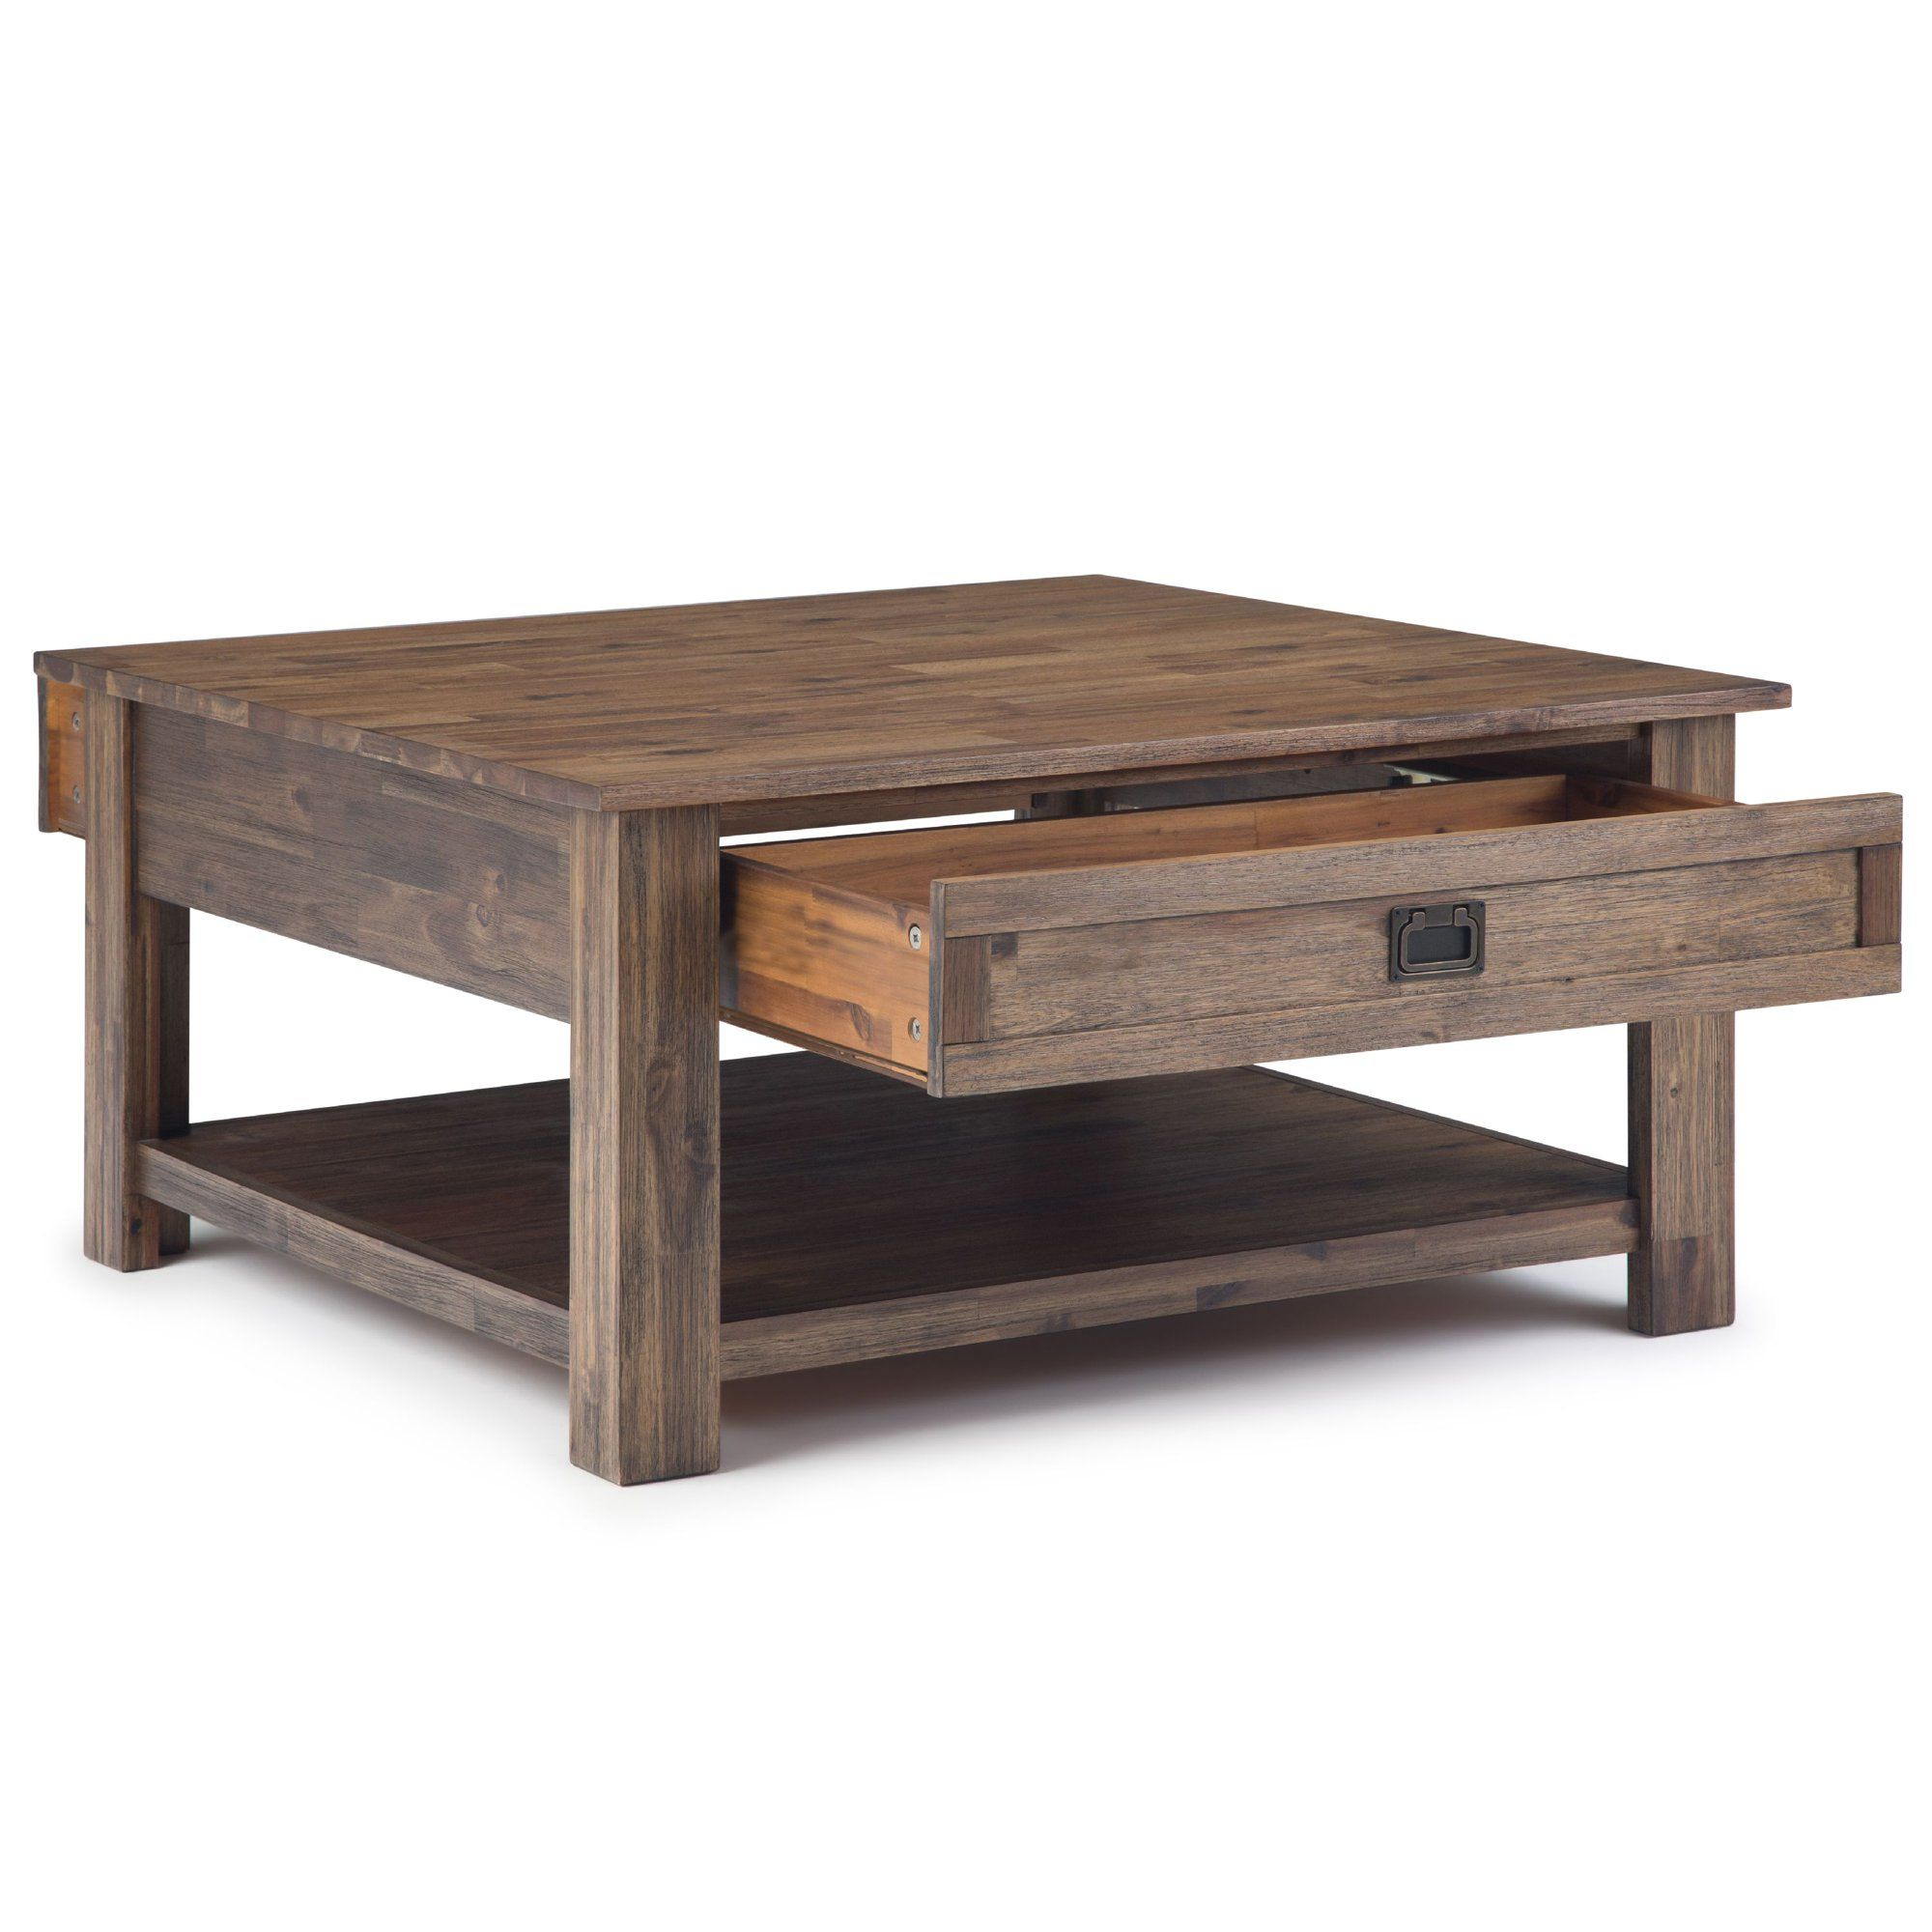 Brooklyn Max Sullivan Solid Acacia Wood 38 Inch Wide Square Rustic Contemporary Coffee Table Coffee Table Square Contemporary Coffee Table Coffee Table Wood [ 2000 x 2000 Pixel ]